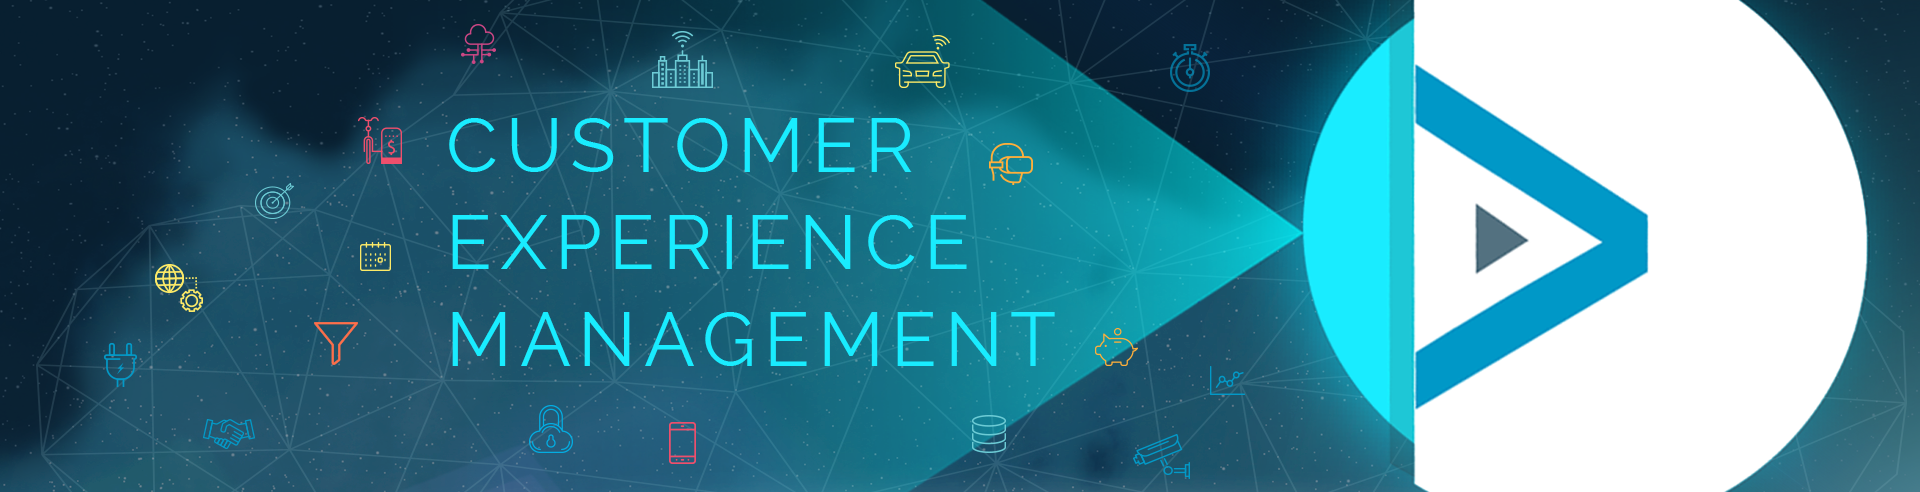 Solutions - Customer Experience Manager banner